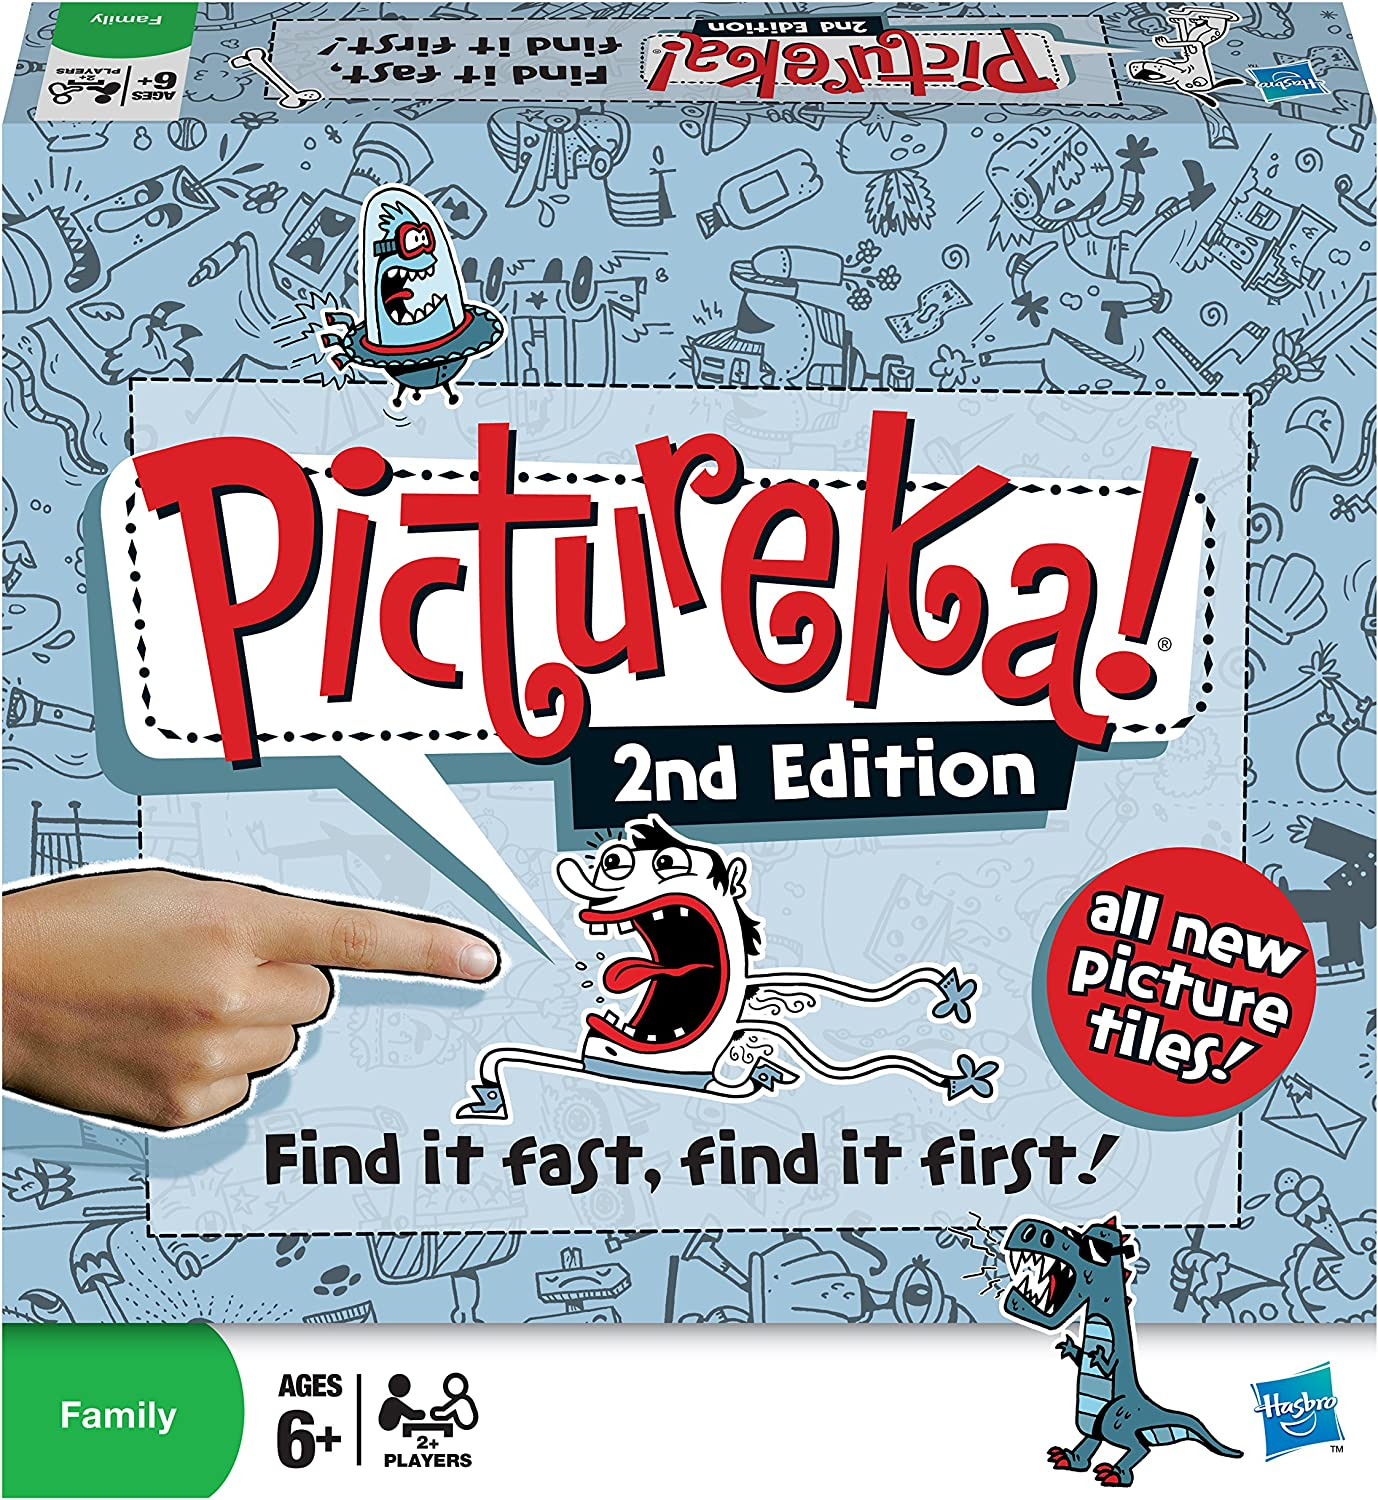 Pictureka - 2nd Edition